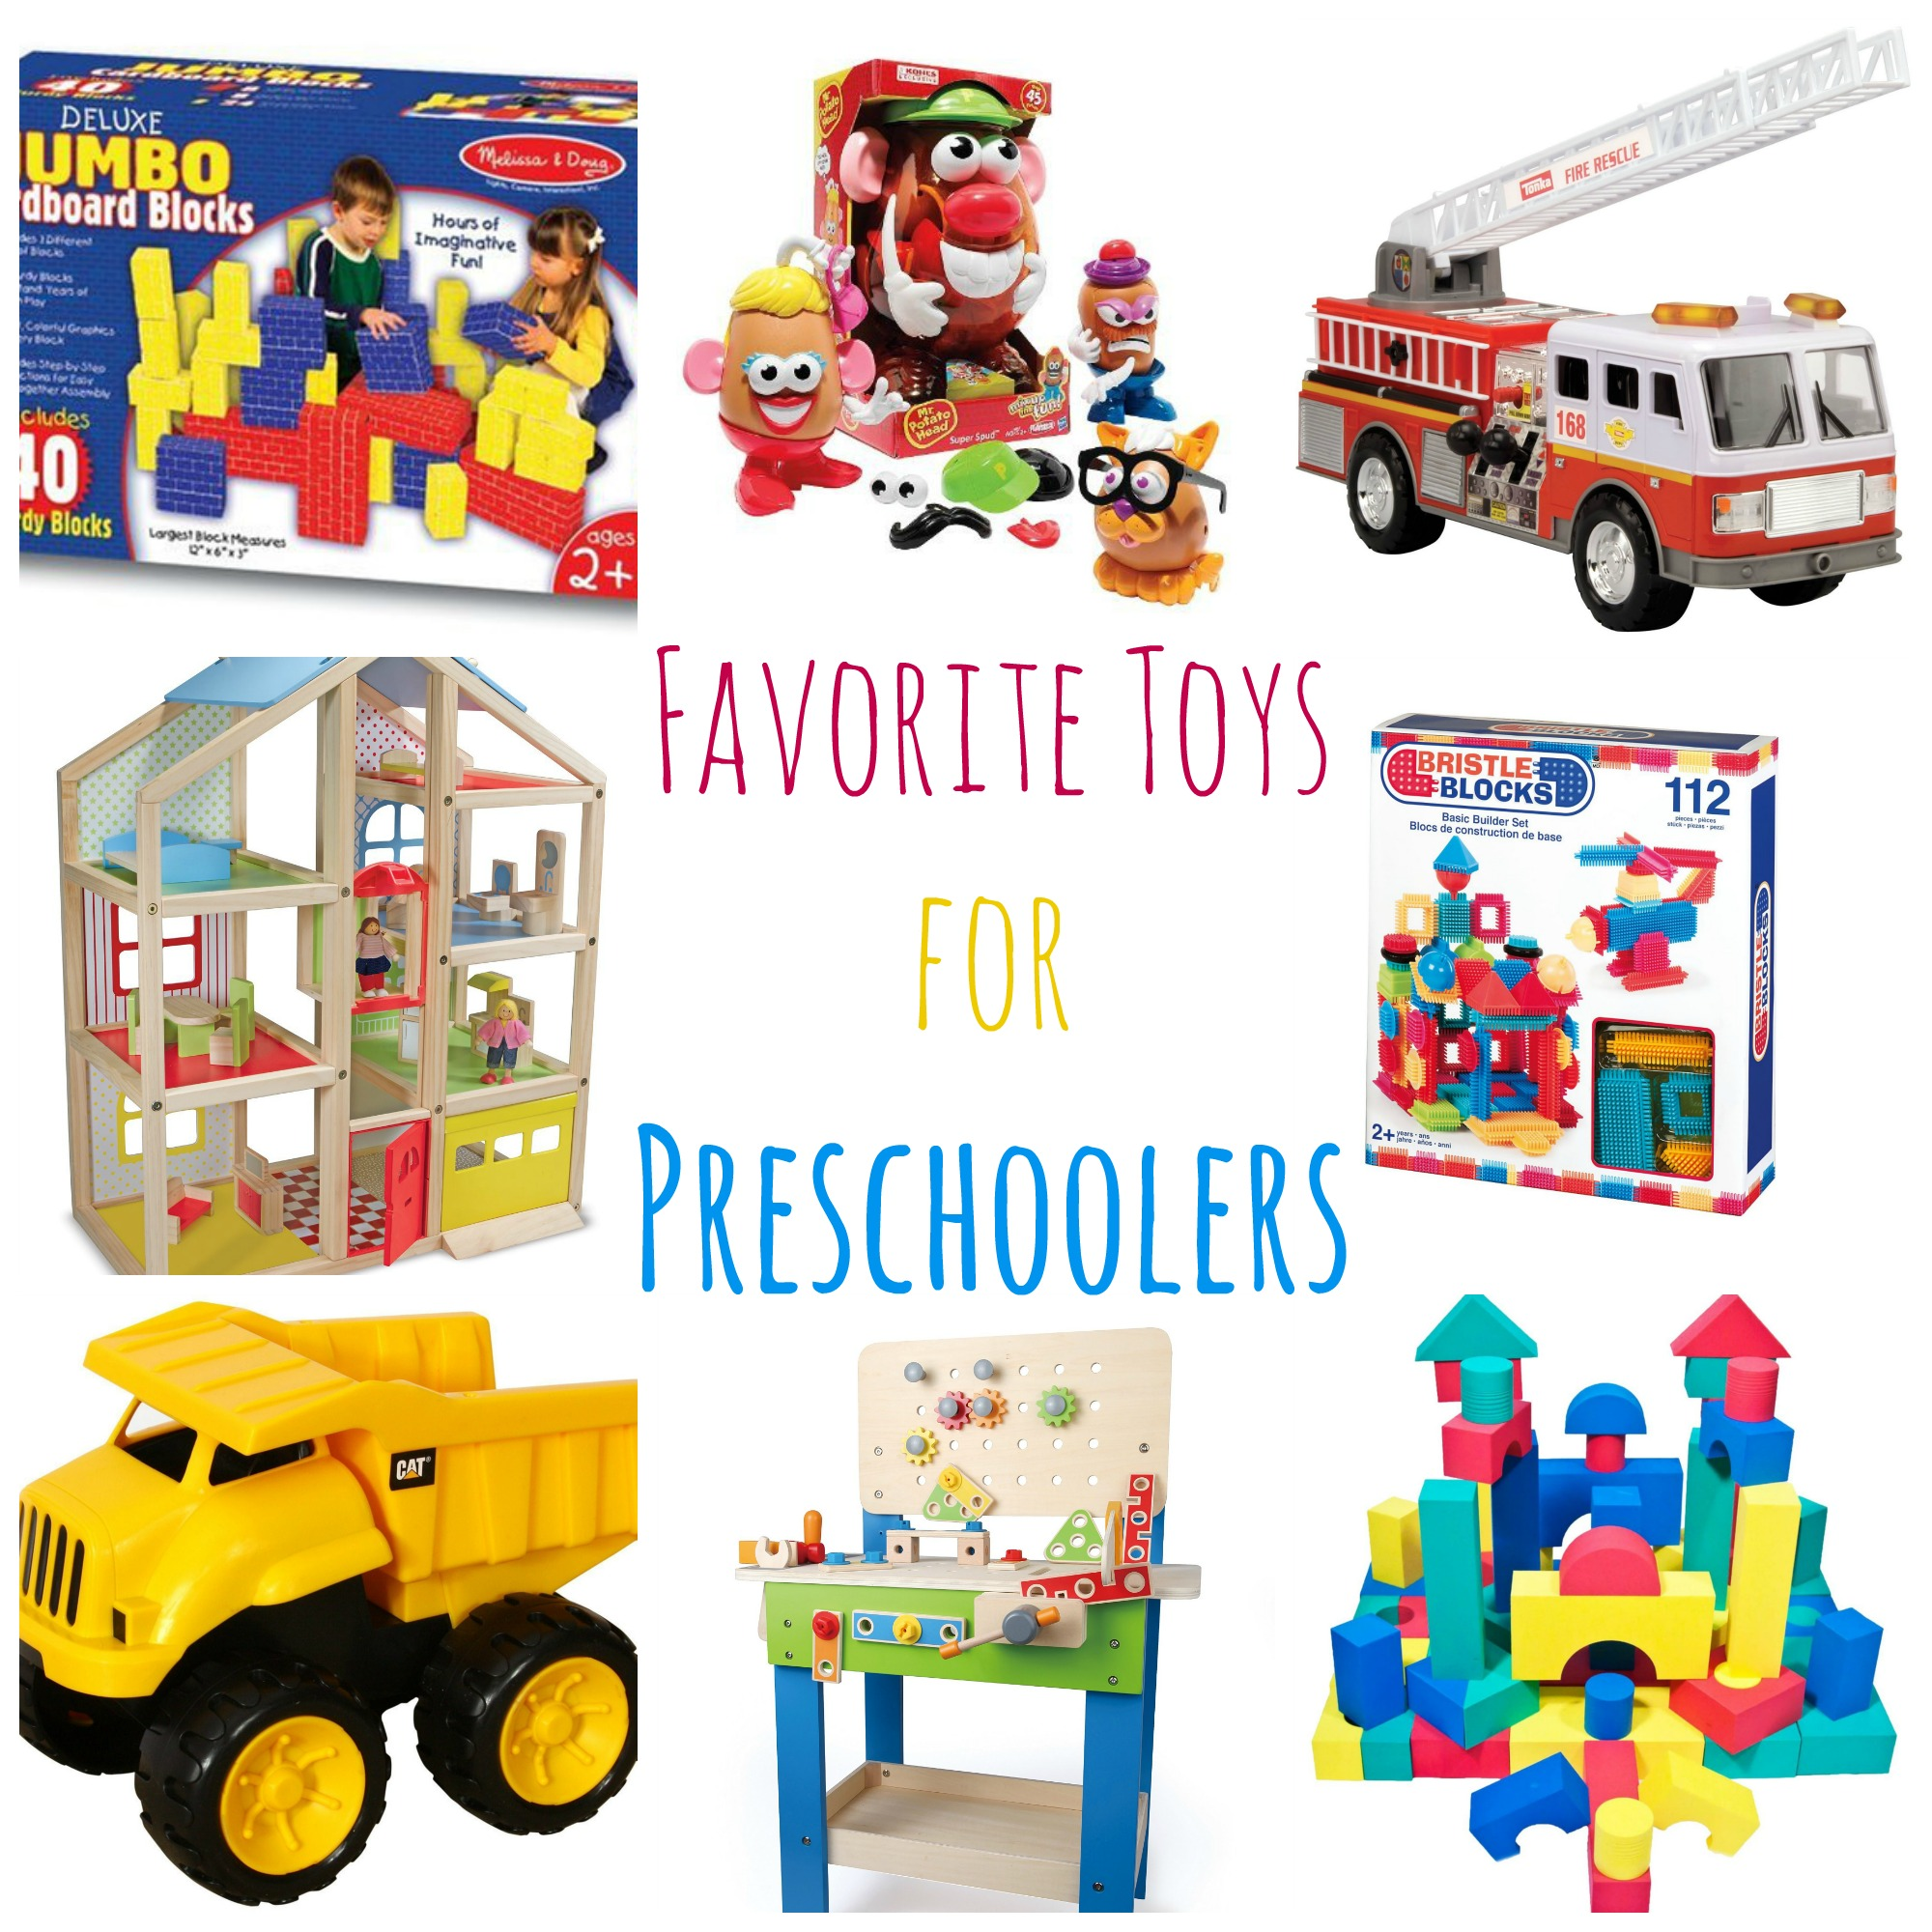 Best Preschooler Toys : Best toys for preschoolers happy home fairy